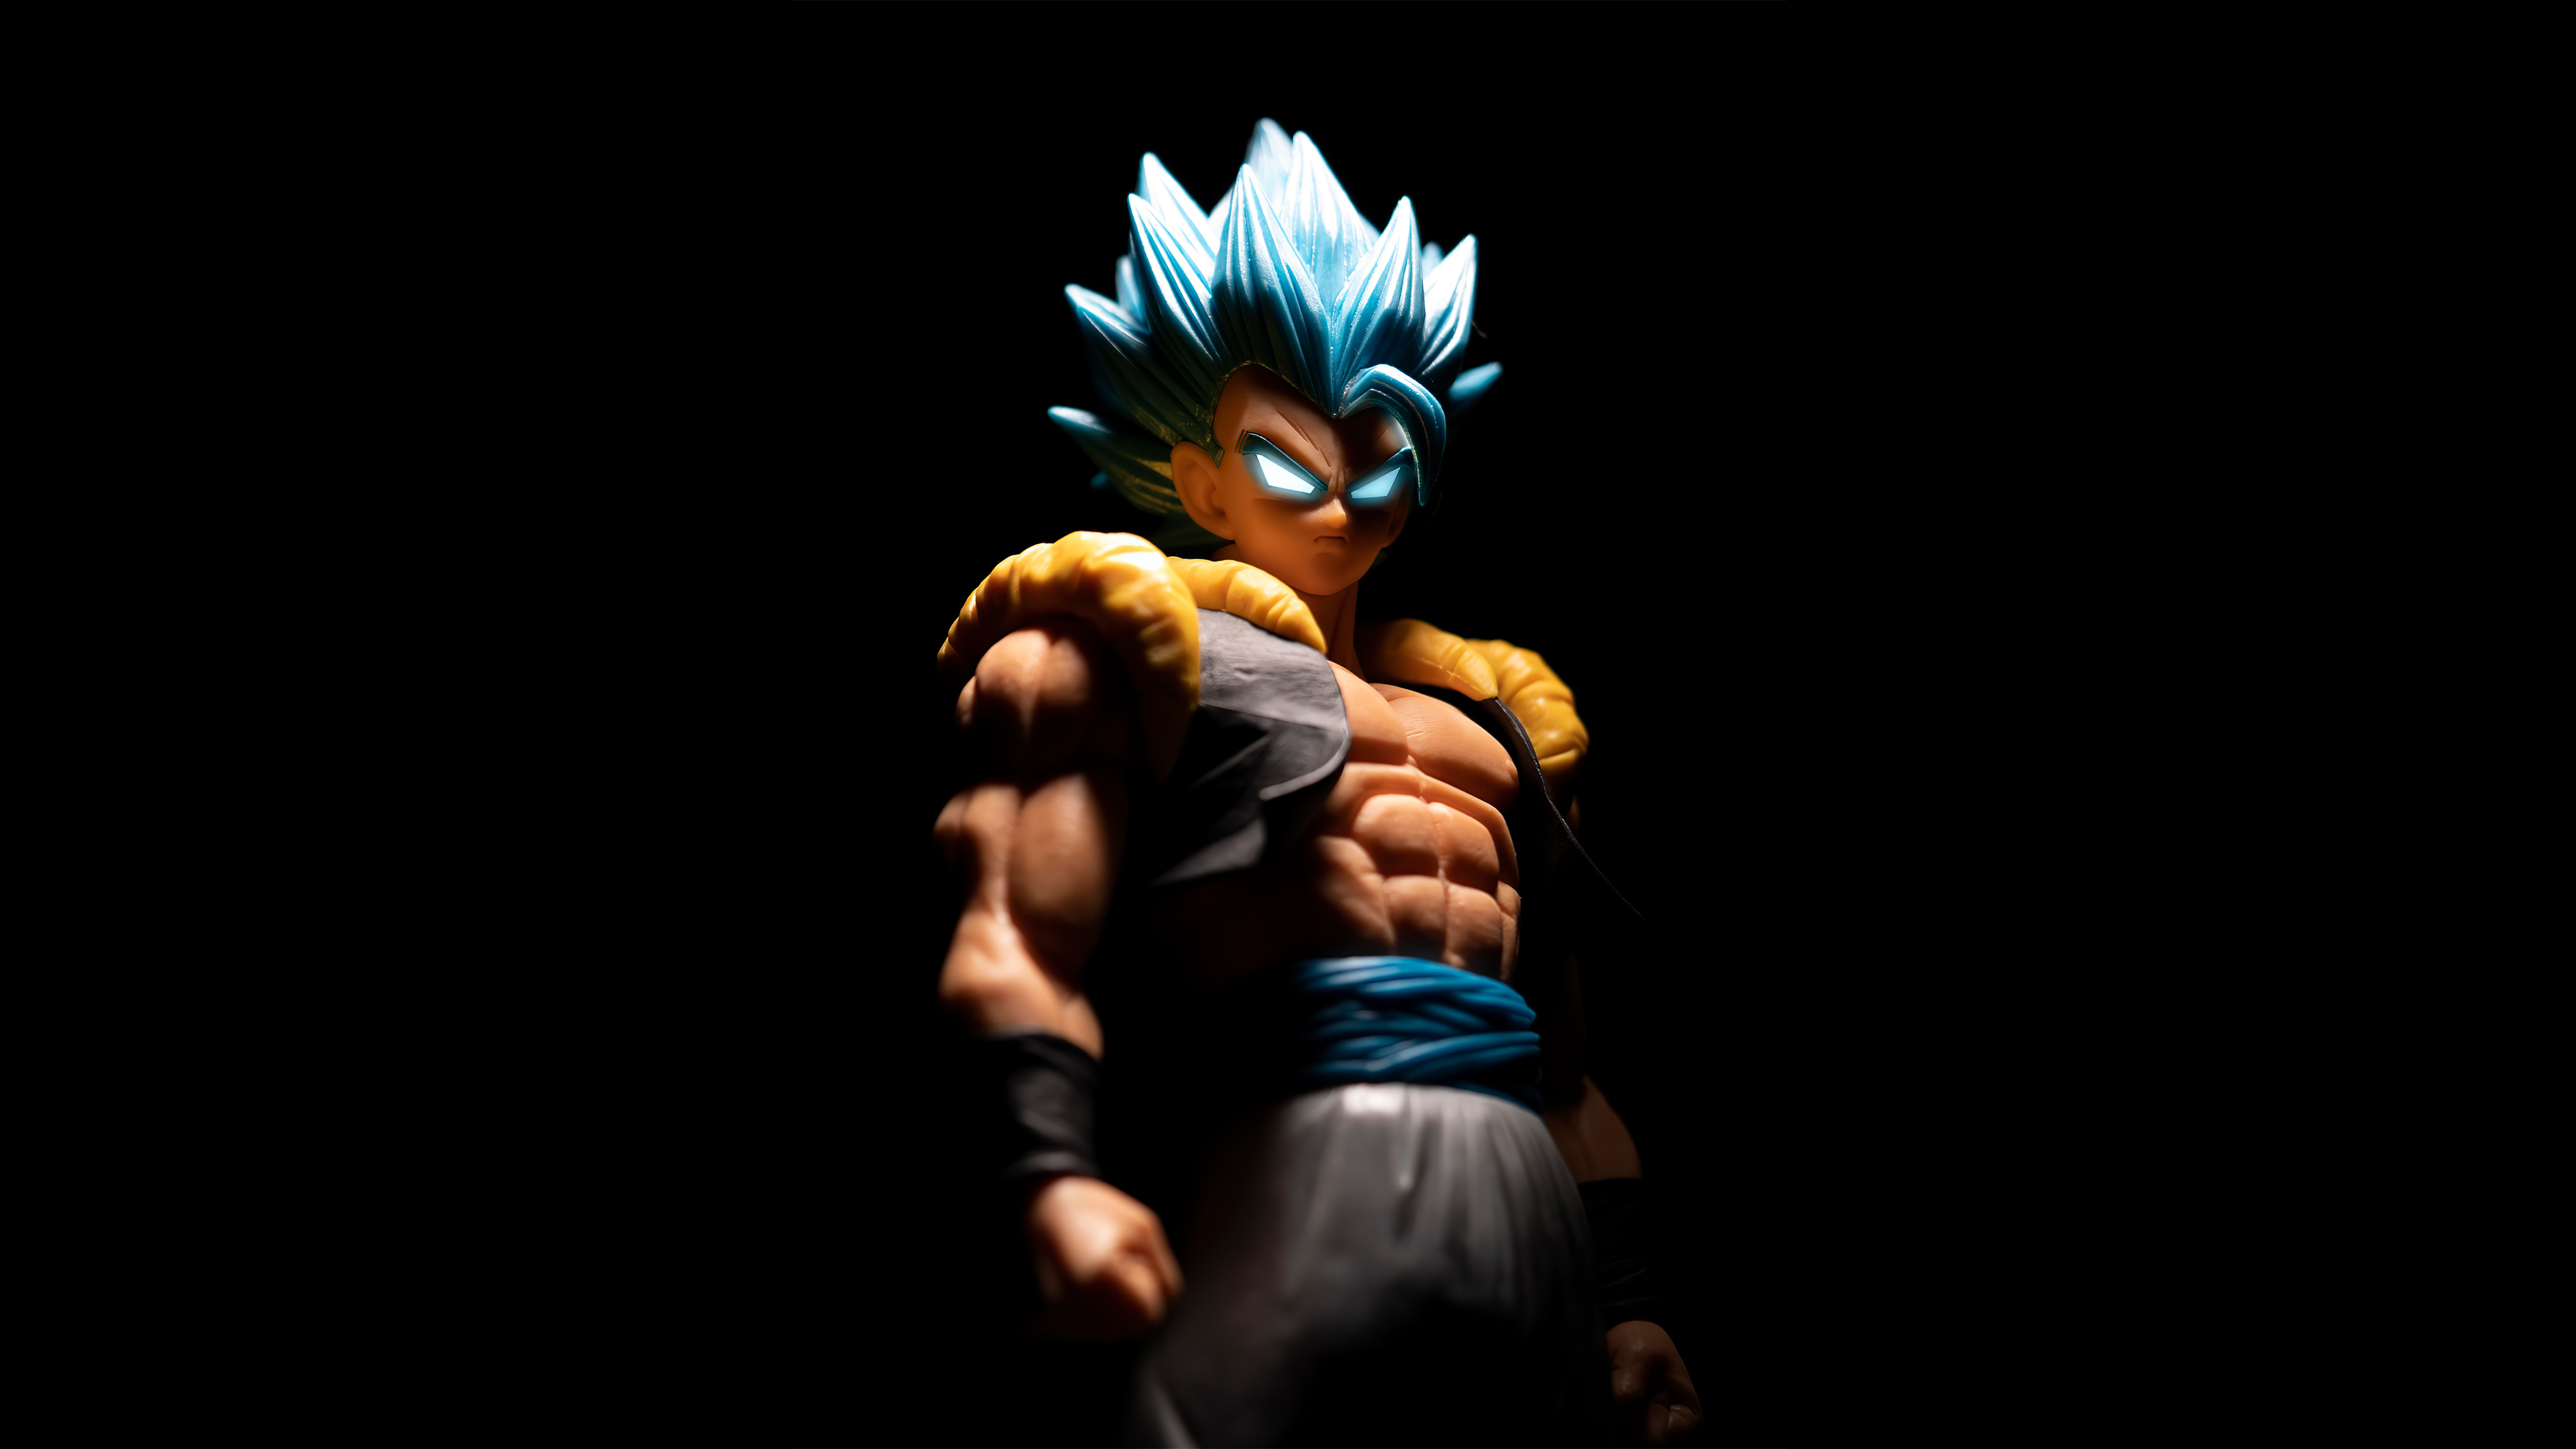 Goku Glow 4k Hd Anime 4k Wallpapers Images Backgrounds Photos And Pictures